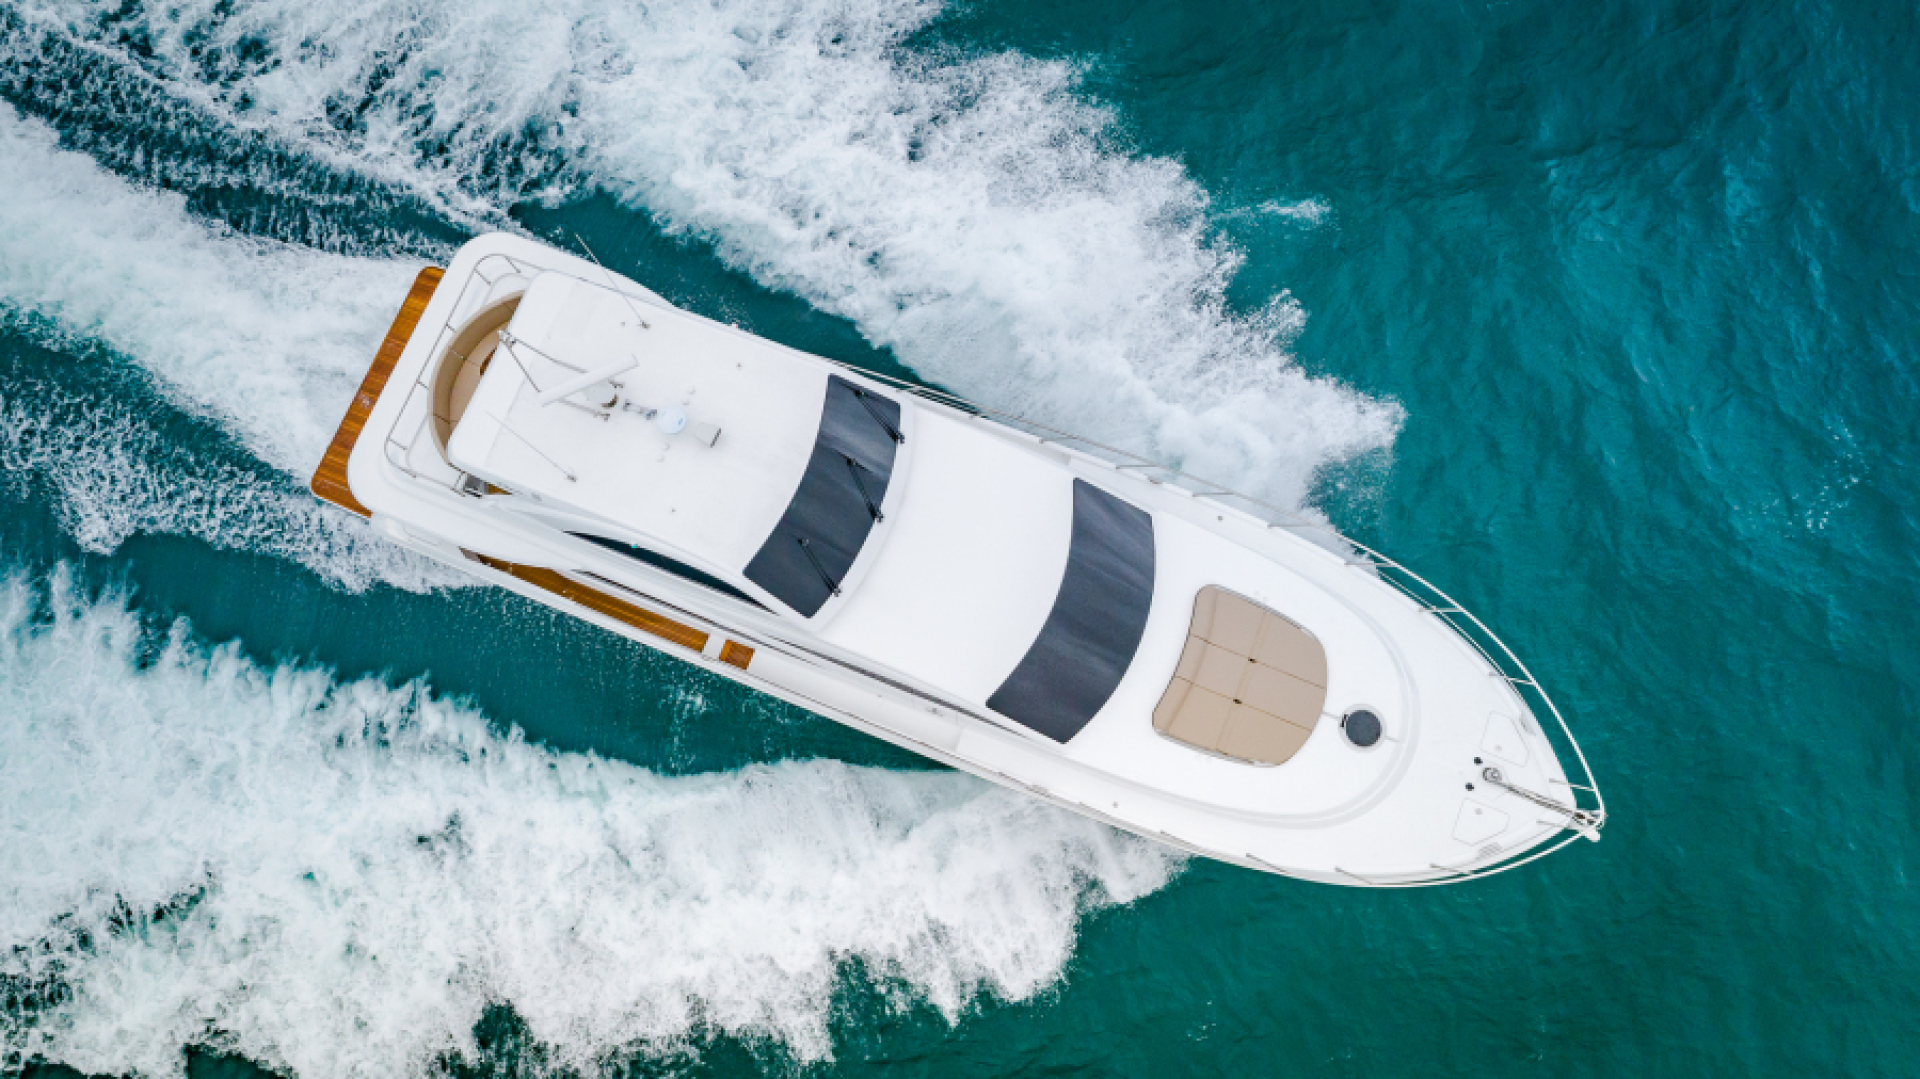 Dyna Yachts-68 Skylounge 2021 -Stuart-Florida-United States-Aerial View-1489998 | Thumbnail